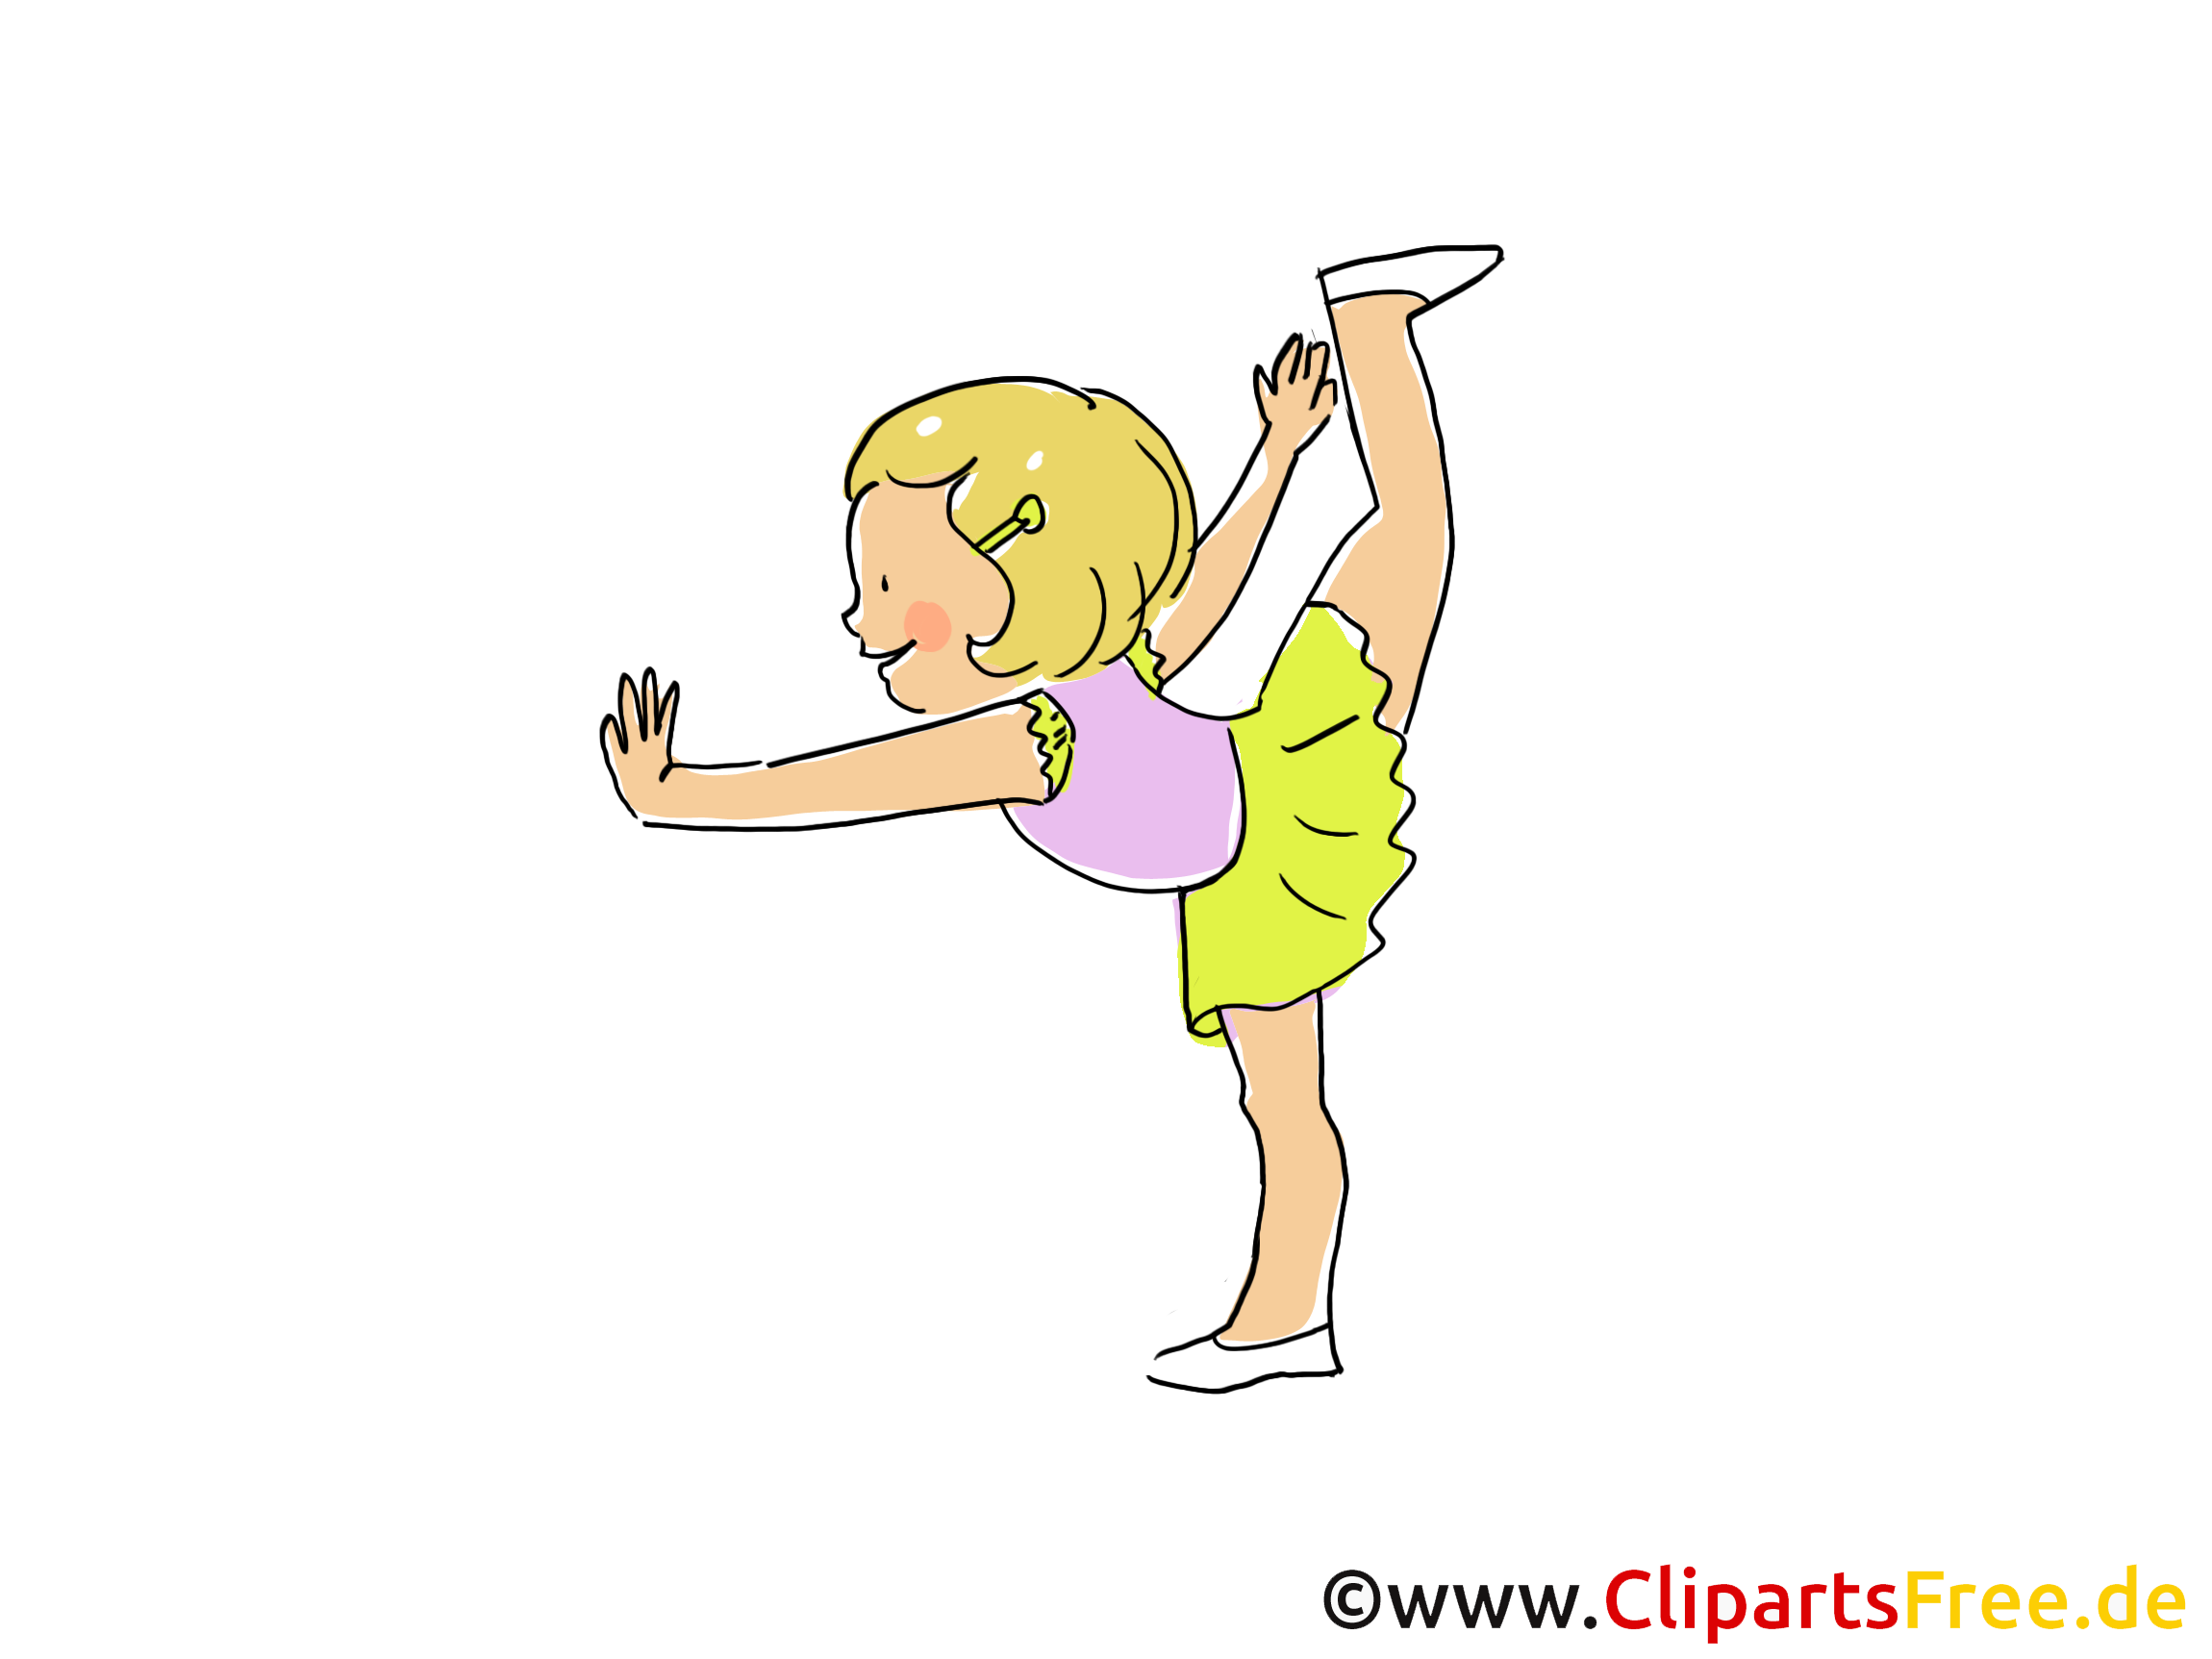 Gymnaste illustration gratuite - Athlète clipart